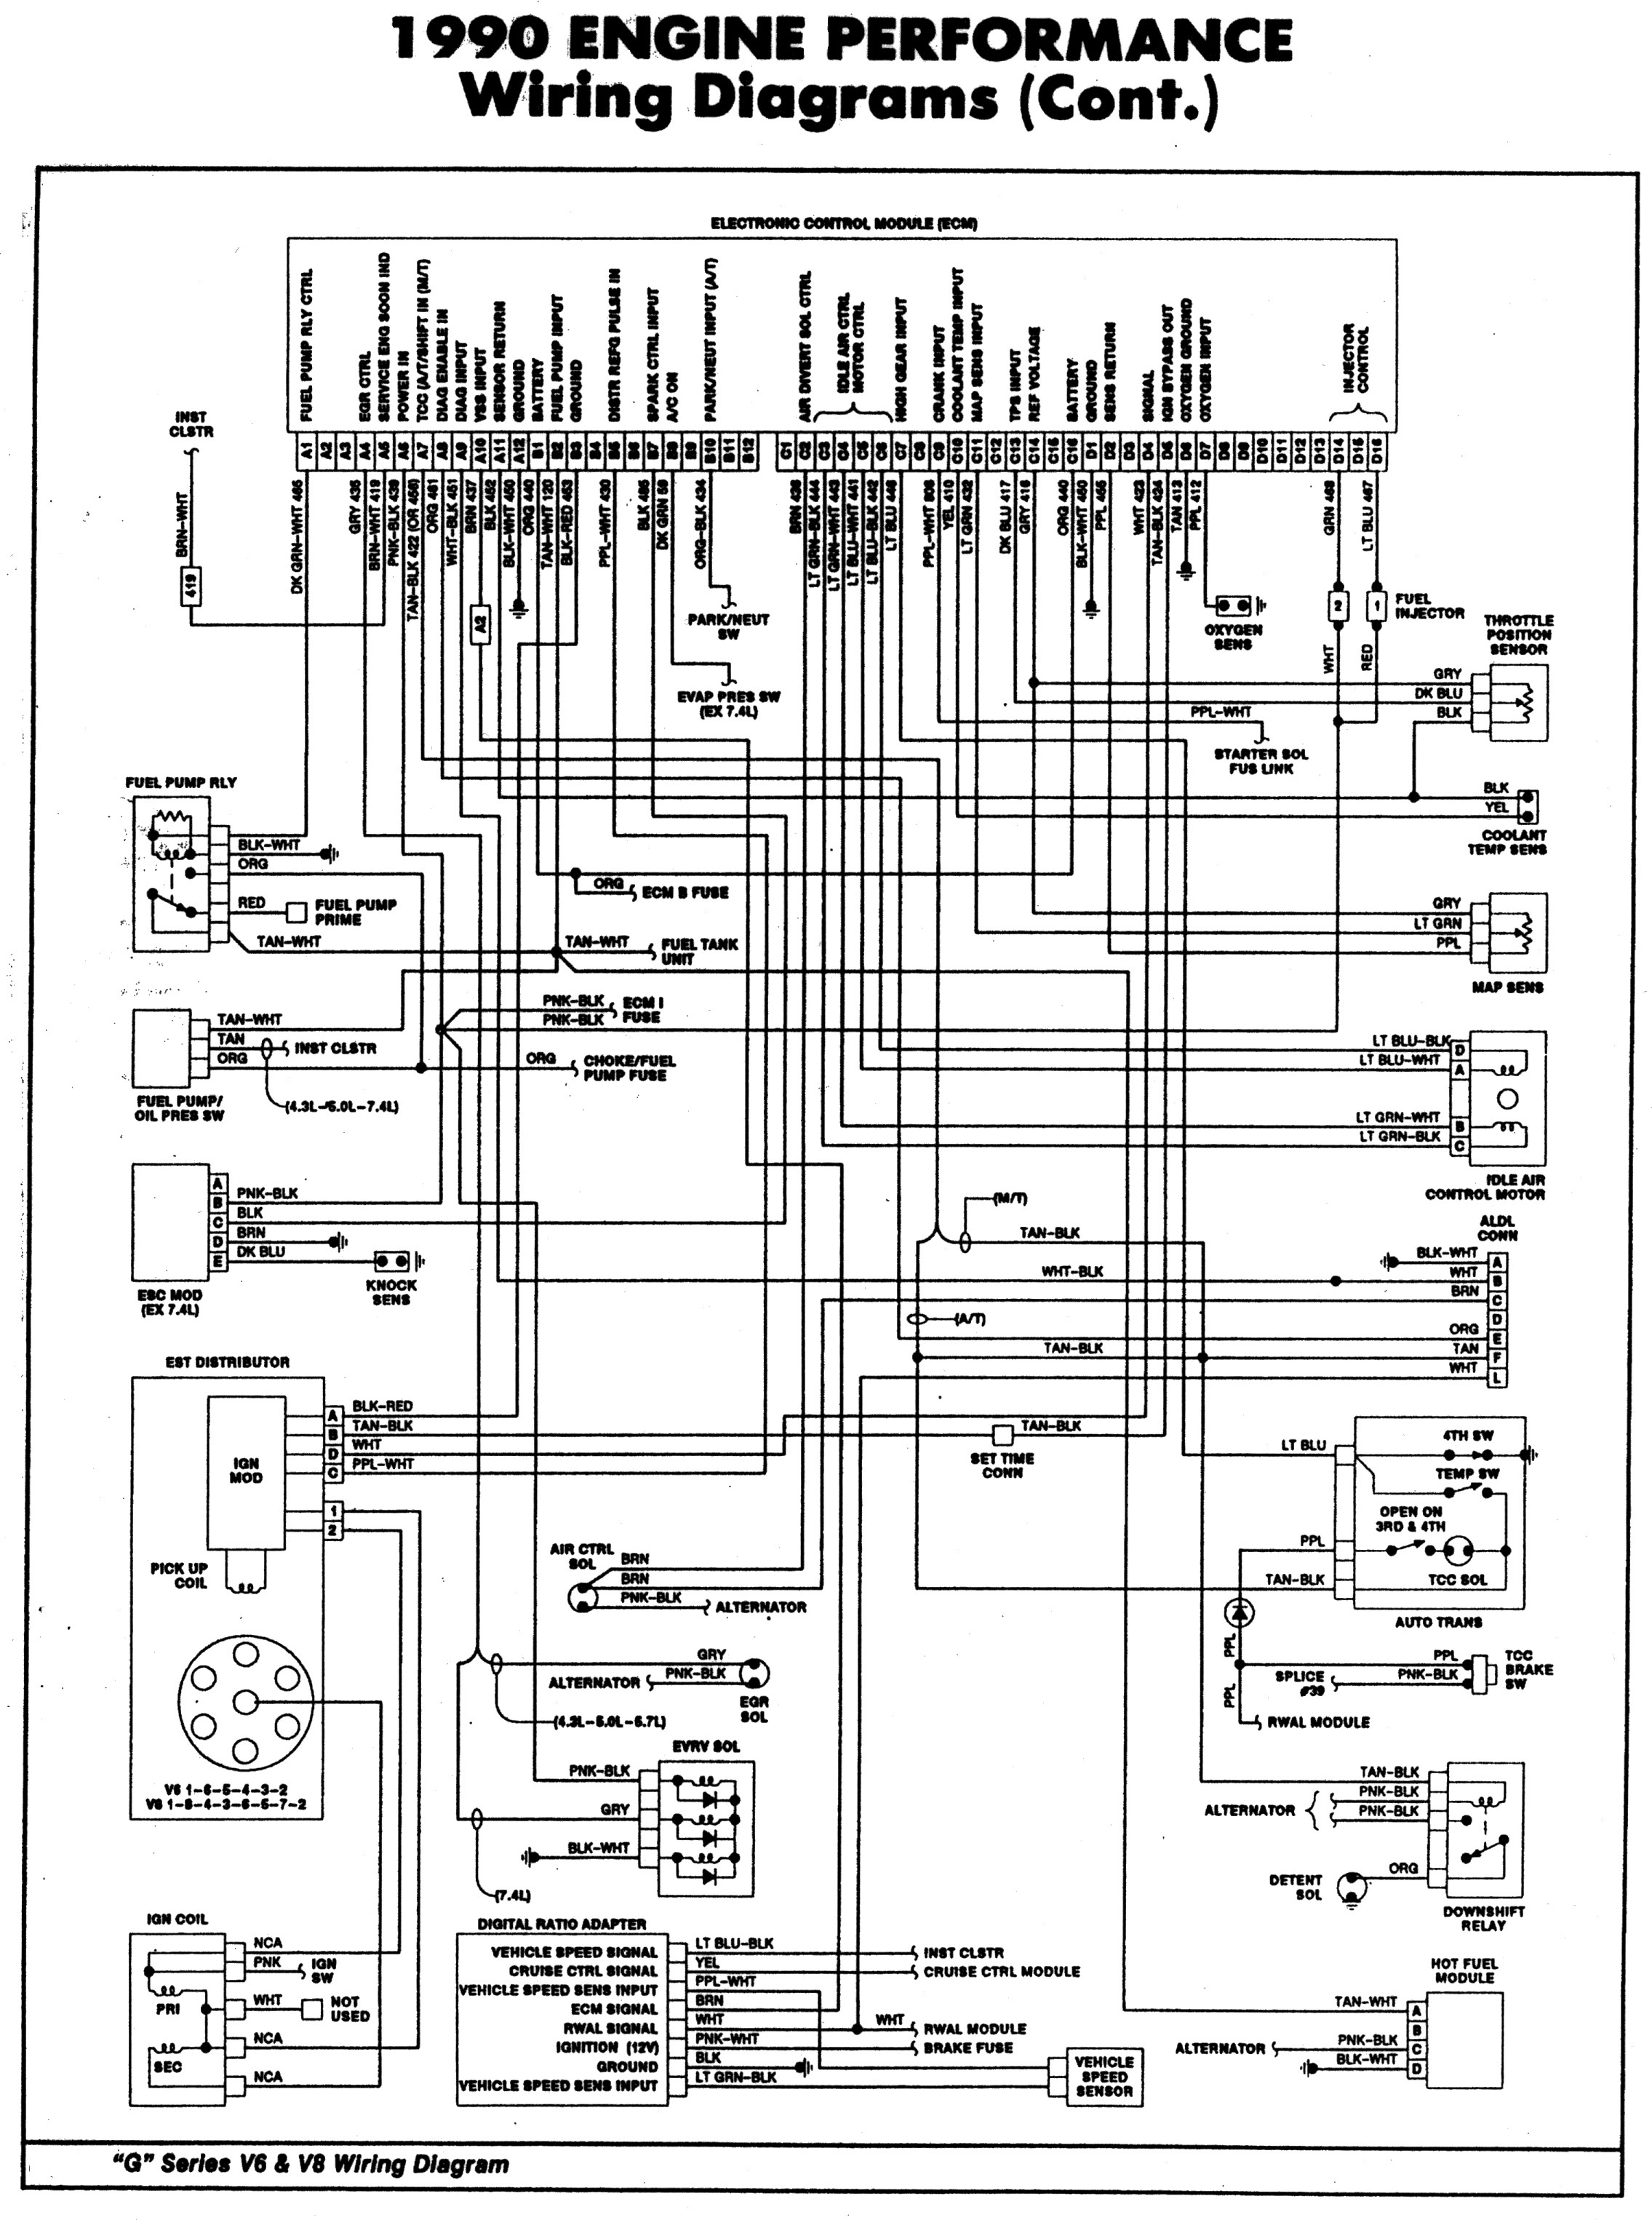 Wiring Diagram For 85 K5 Blazer Wiring Diagrams The